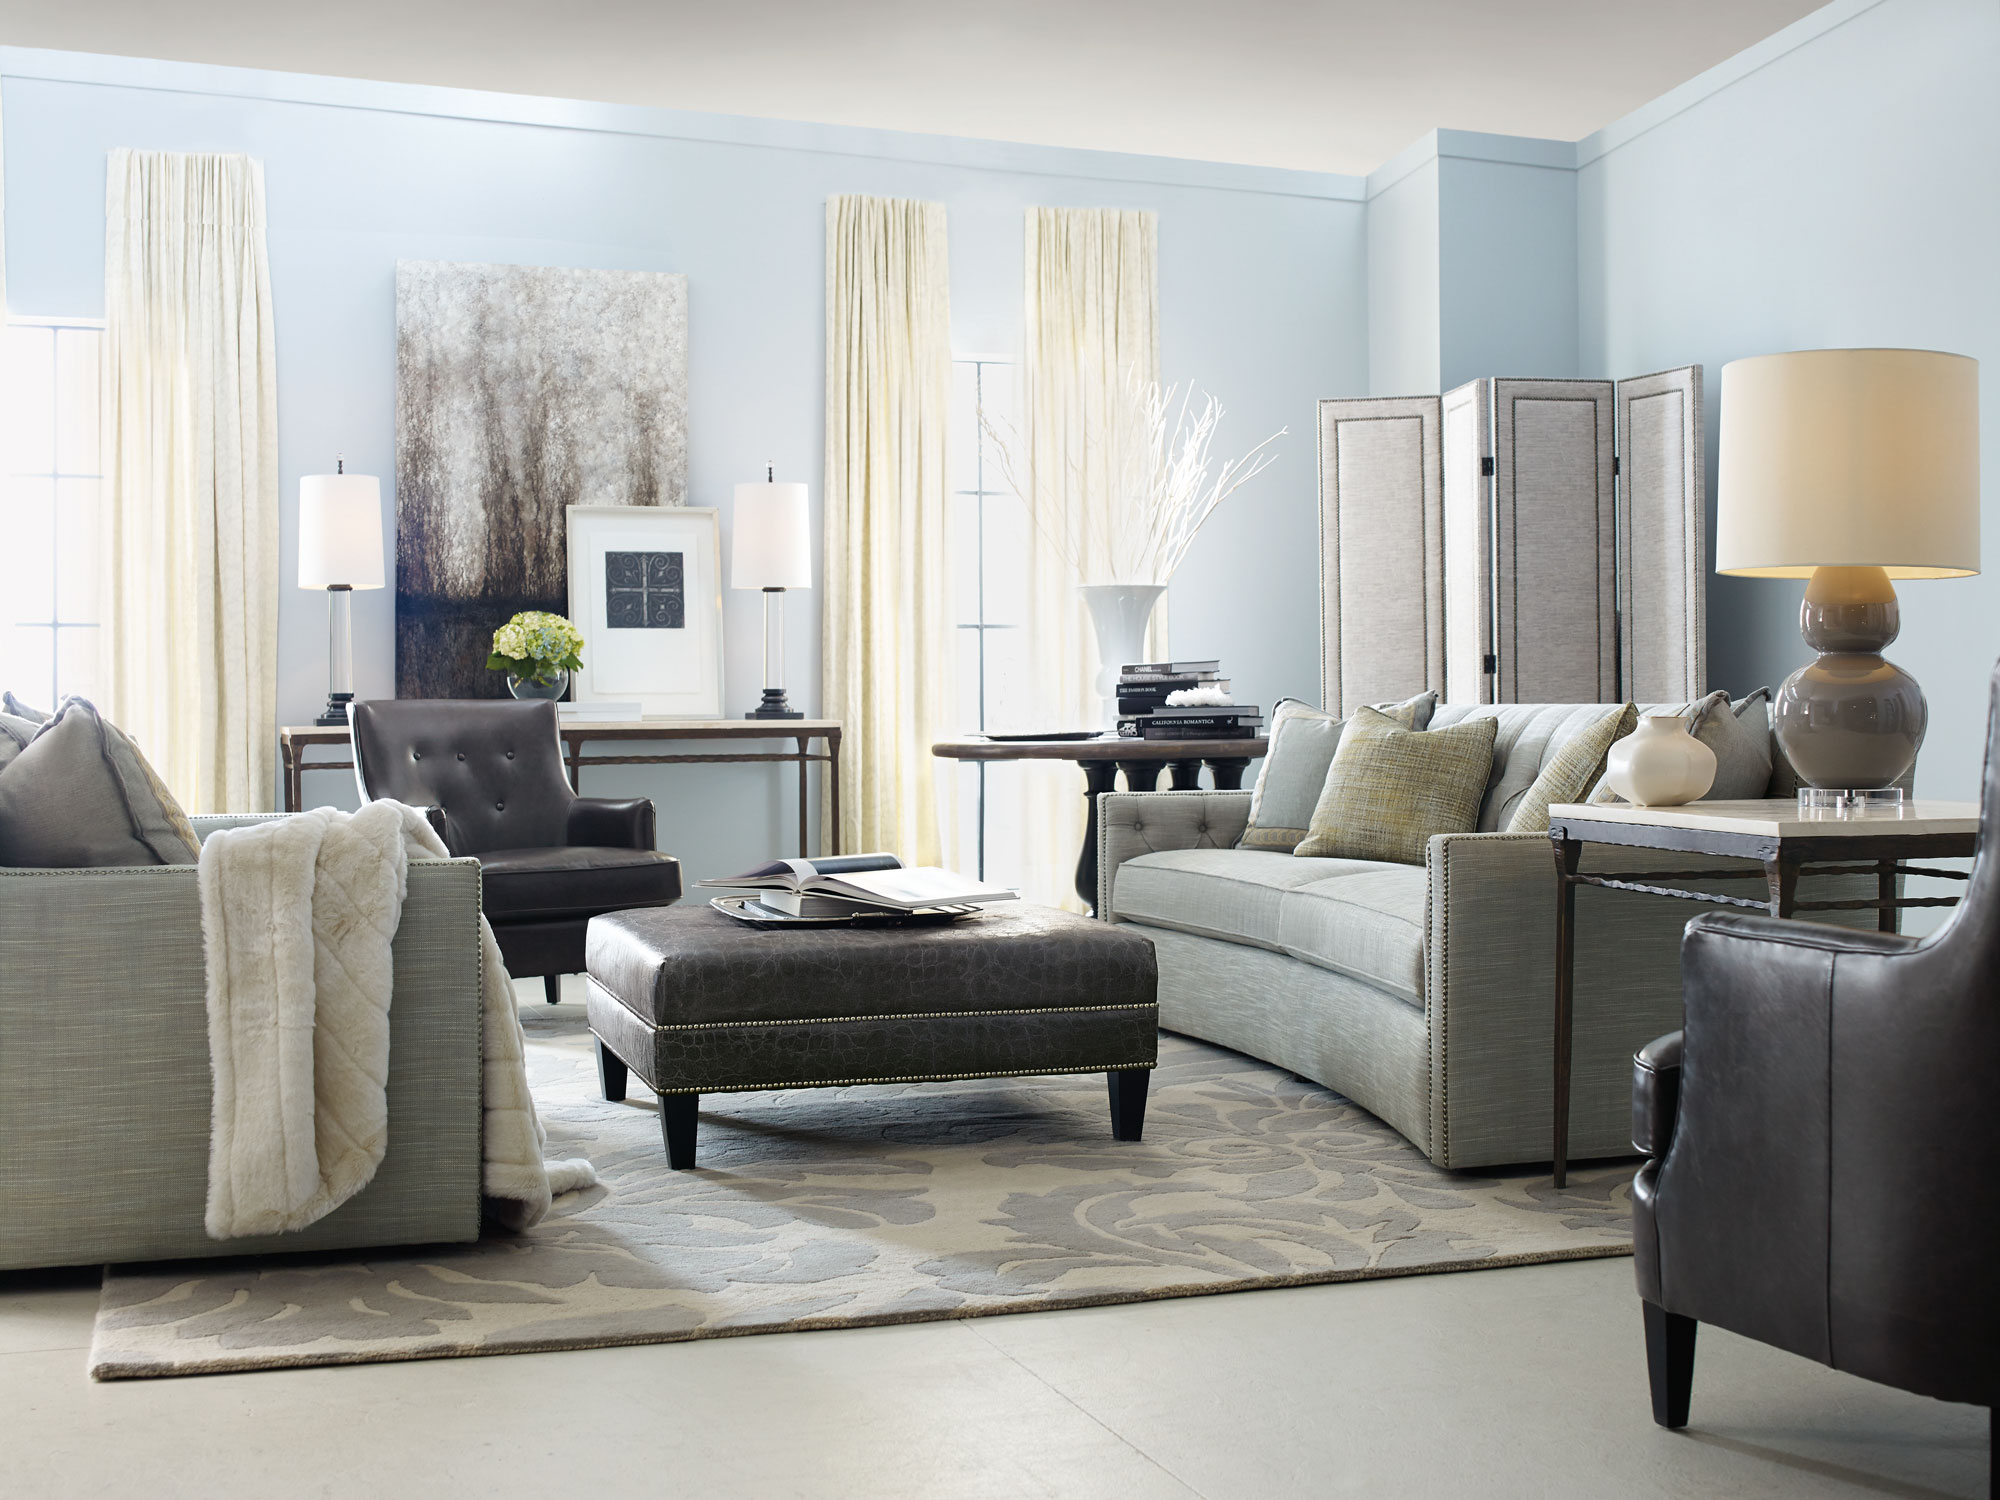 Candace ferrell rancho desmond rialto living room bernhardt Bernhardt living room furniture